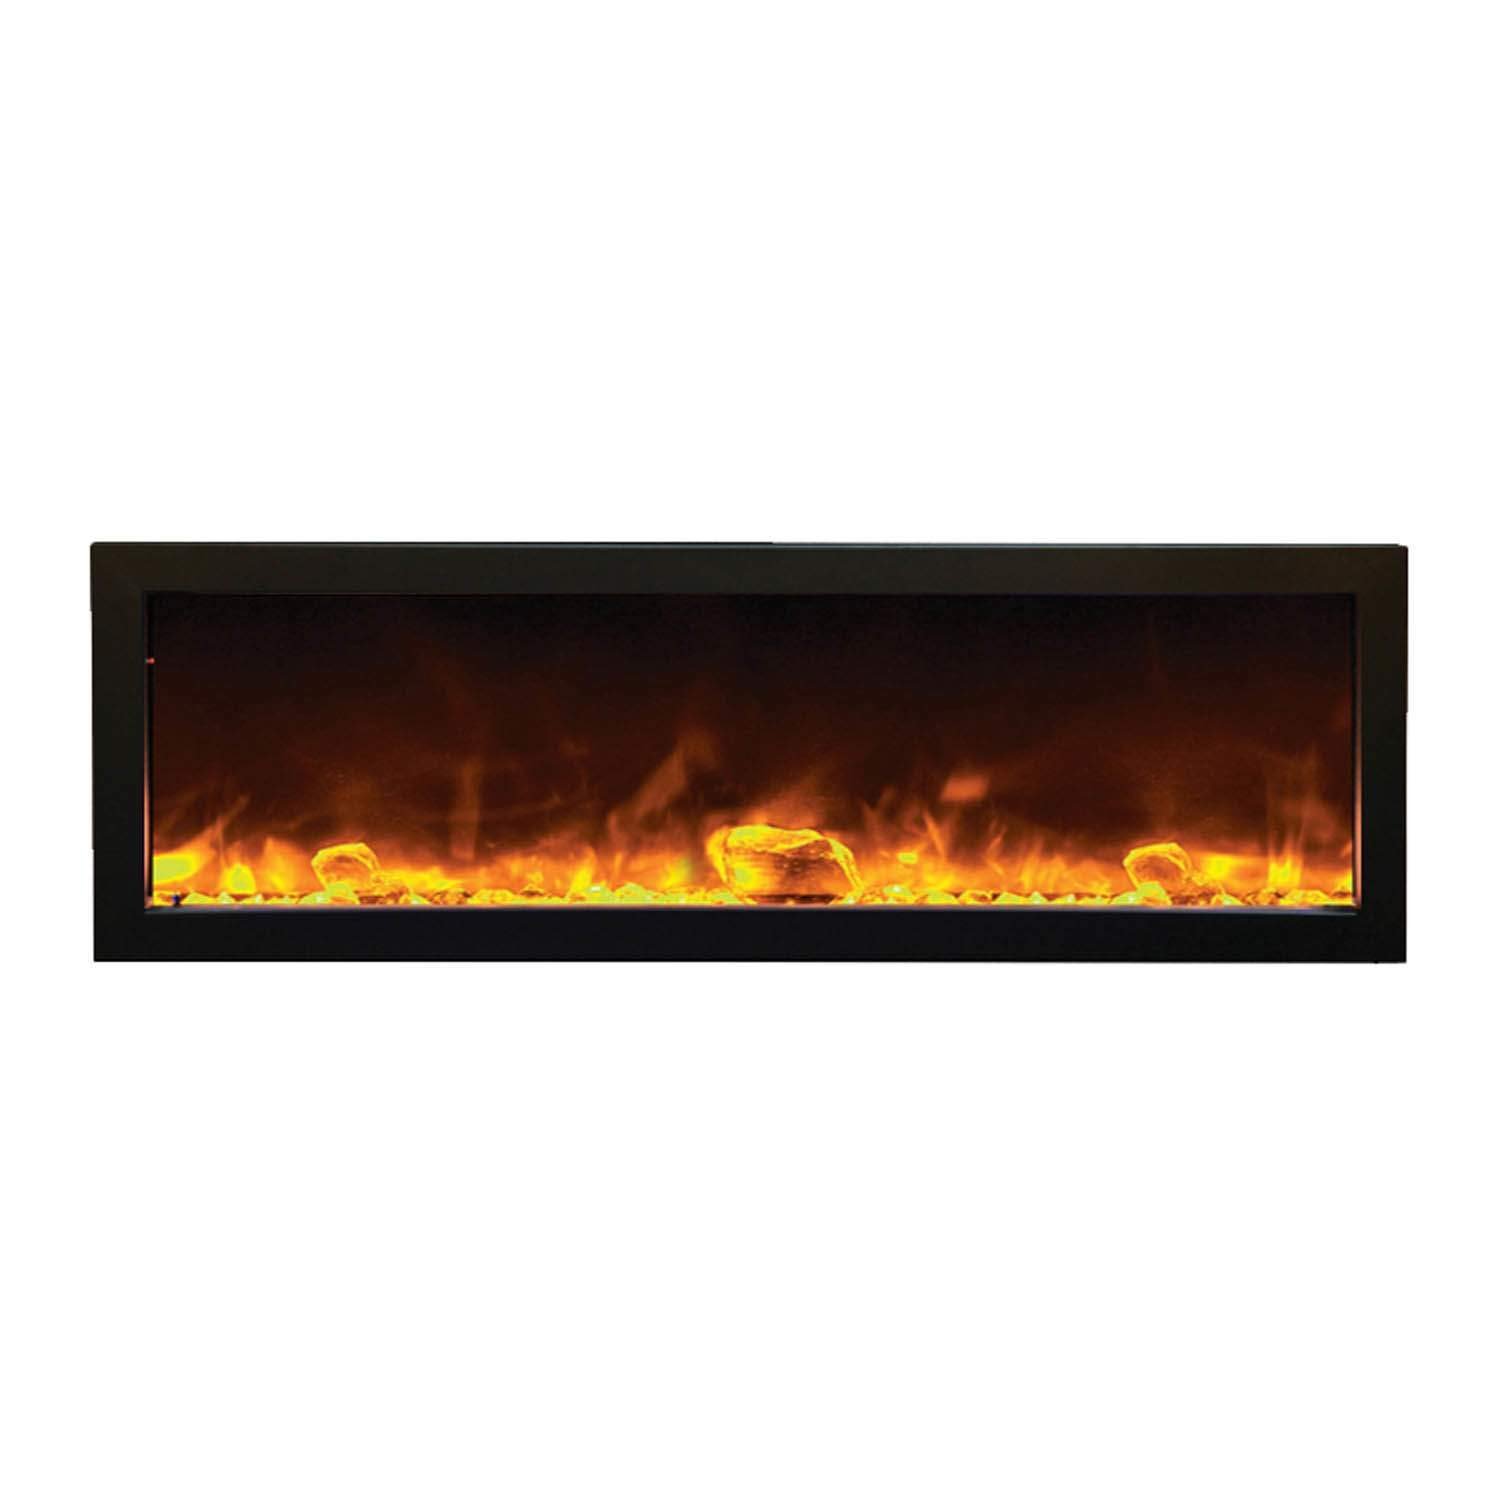 50 inch recessed electric fireplace awesome amantii bi 50 slim od outdoor panorama series of 50 inch recessed electric fireplace